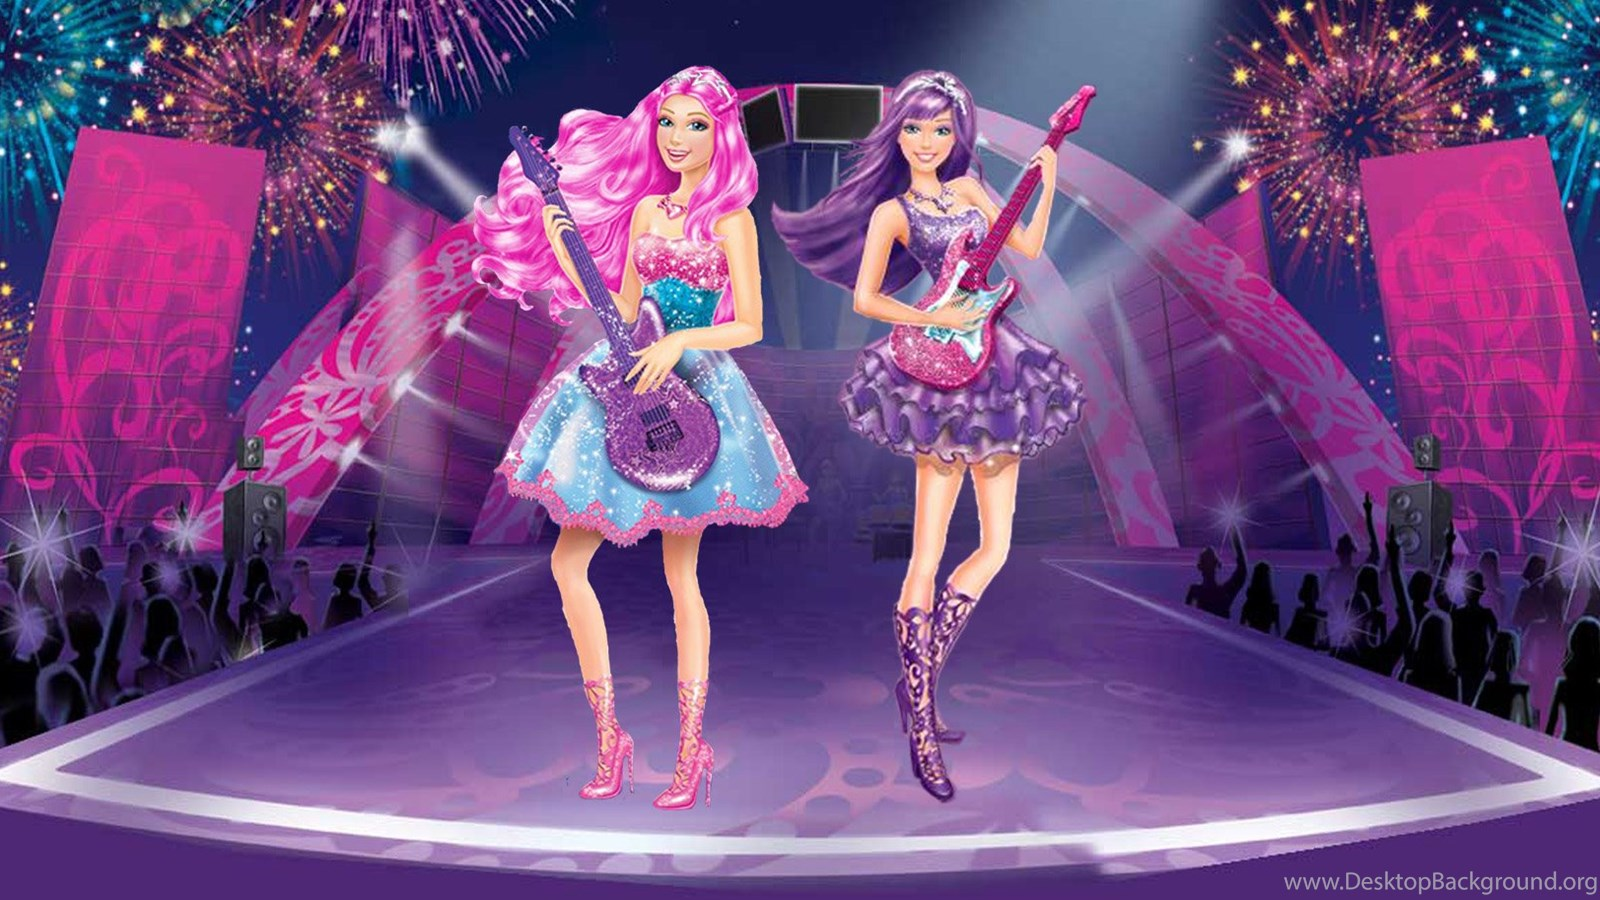 Black Theme Wallpaper For Iphone Wallpapers Barbie Princess And The Popstar Tori Keira In